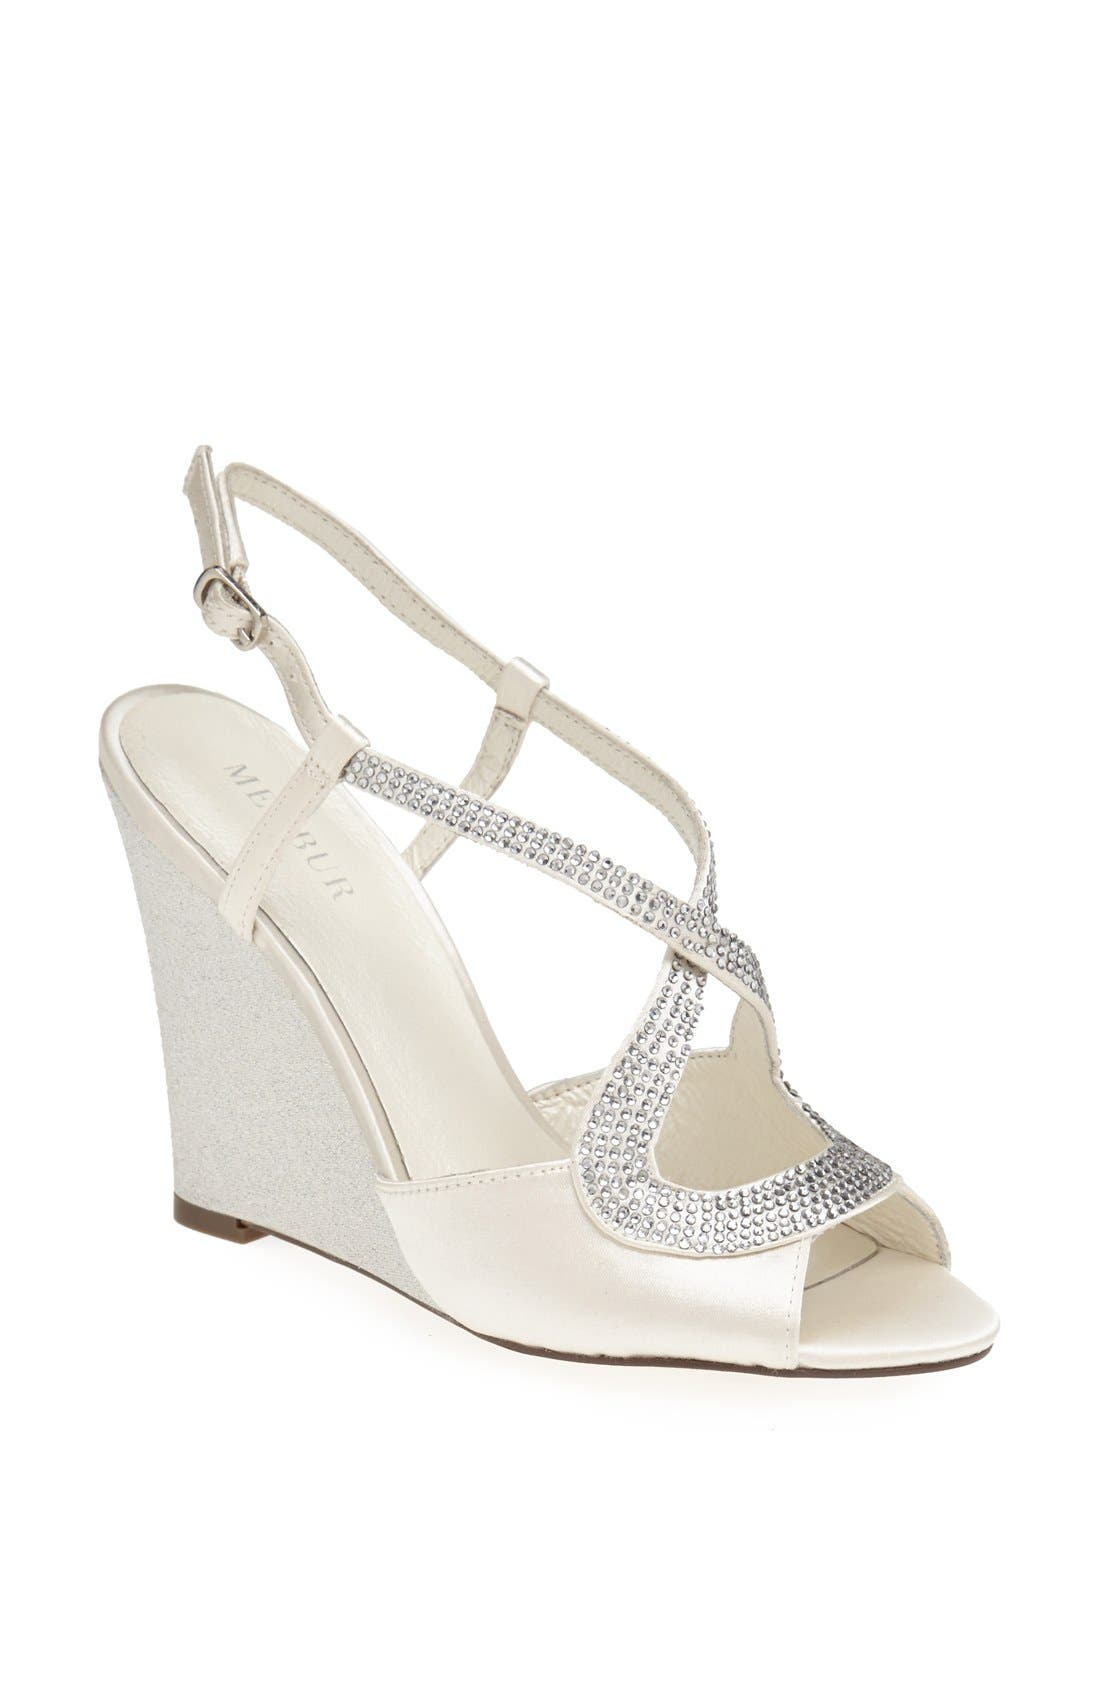 MENBUR 'Tunder' Satin Wedge Sandal